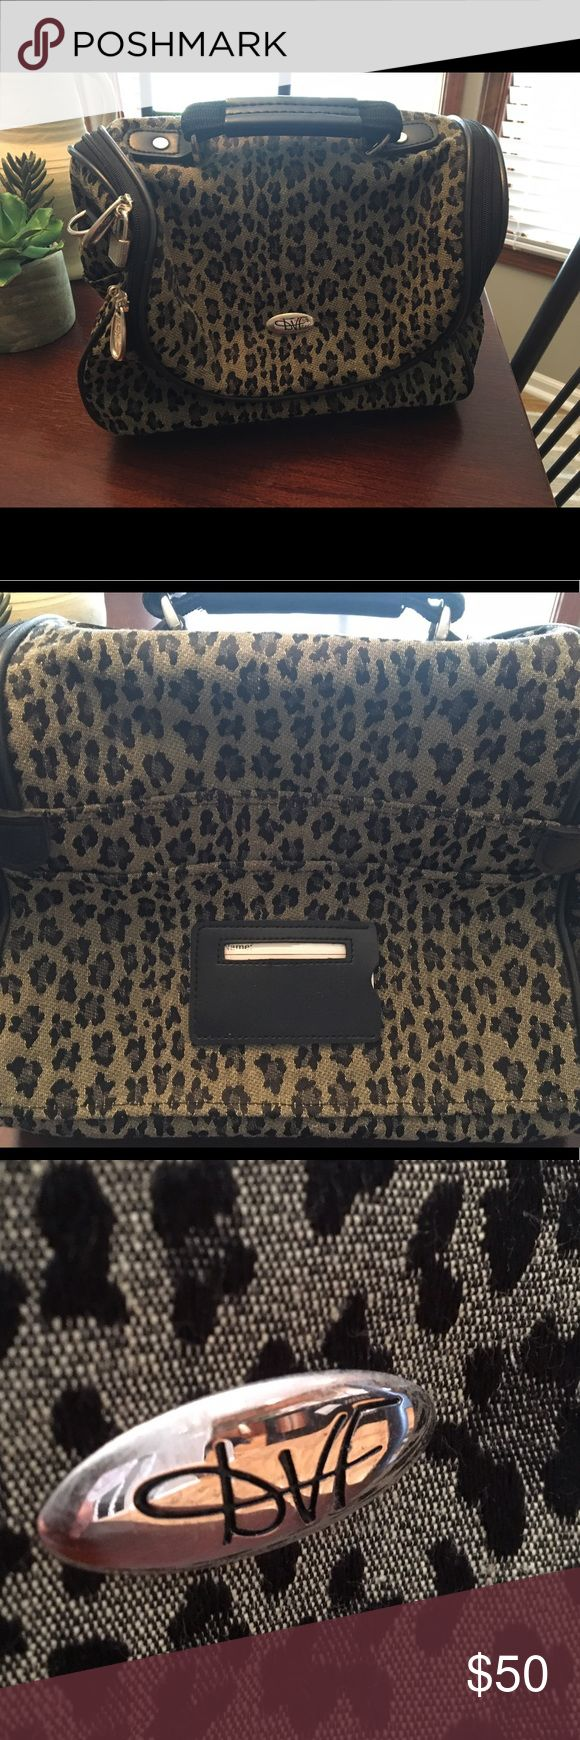 DVF Travel/cosmetic bag 💼 Colors are gray/black with animal print. Zipper goes all the way around for easy in and out !! Black interior with mirror. Drame Vou Furstenberg . Black on bottom with 4 feet. Designed in USA. Made in Thailand. No shoulder strap. DVF Bags Travel Bags